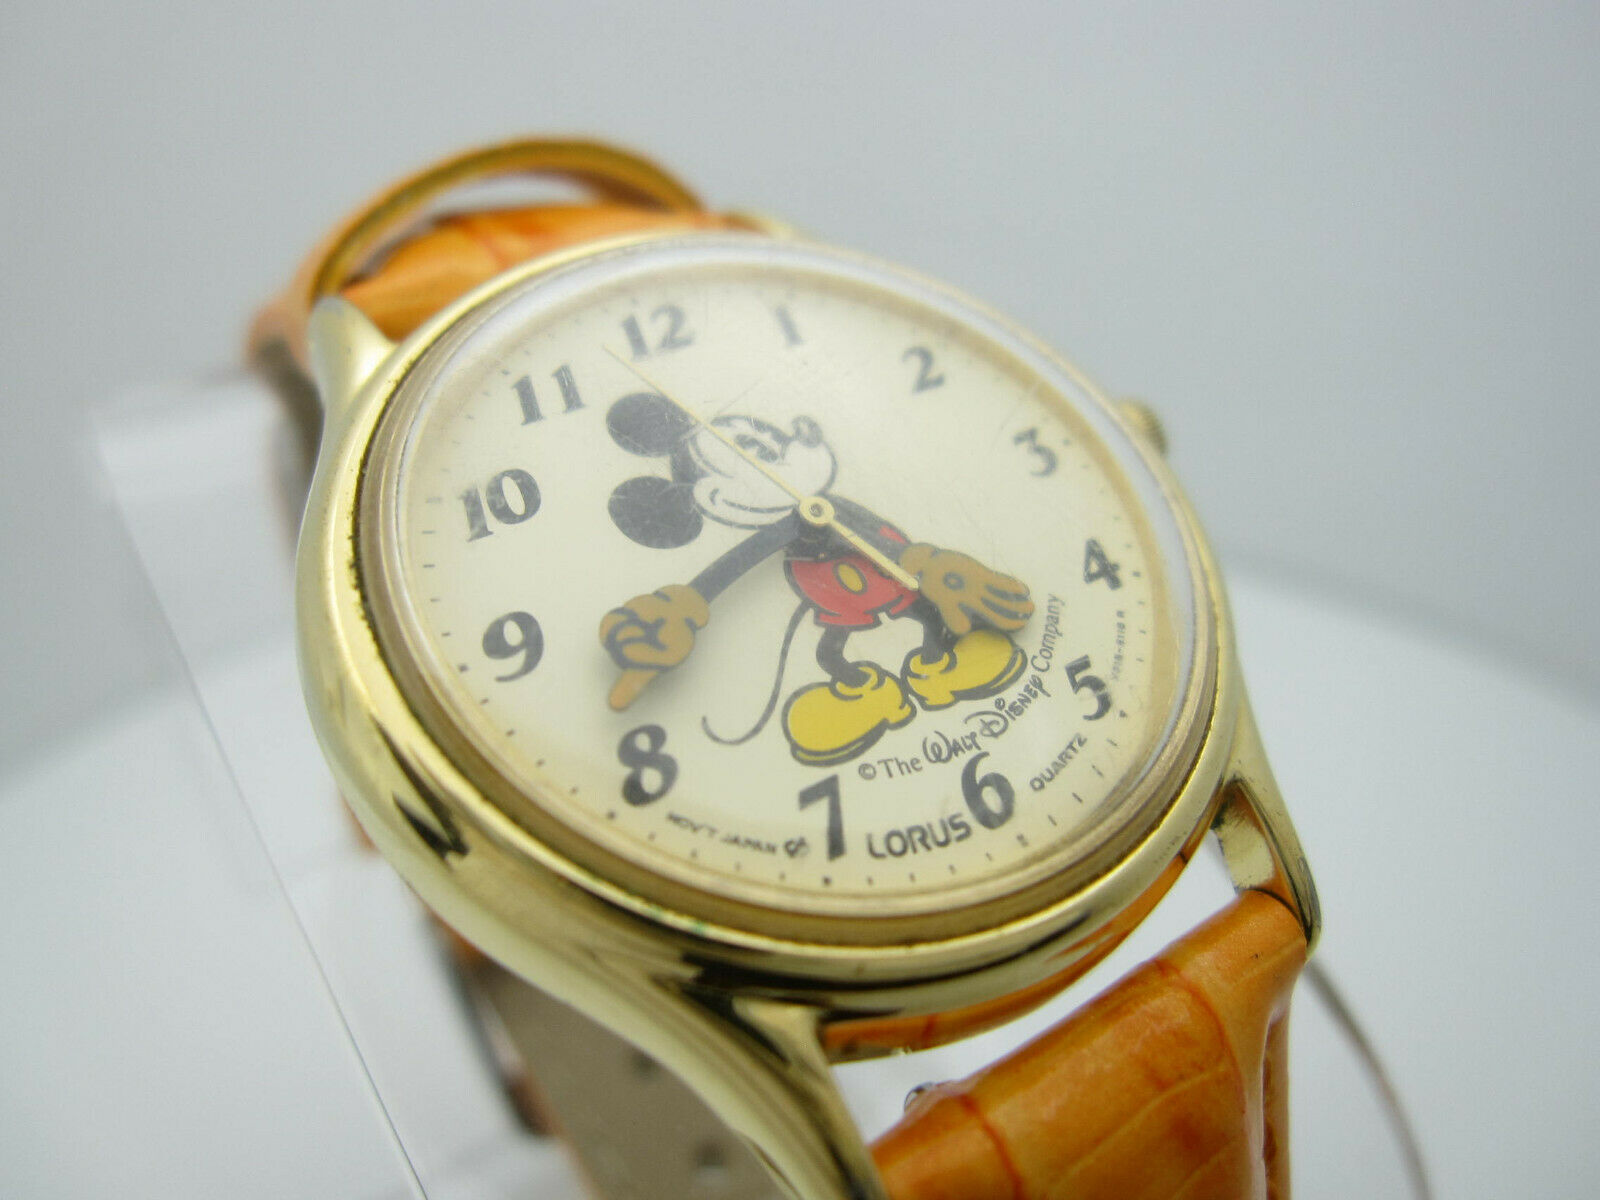 Vintage Mickey Mouse Quartz WR Analog Dial Watch (B956) V515-6118R image 9